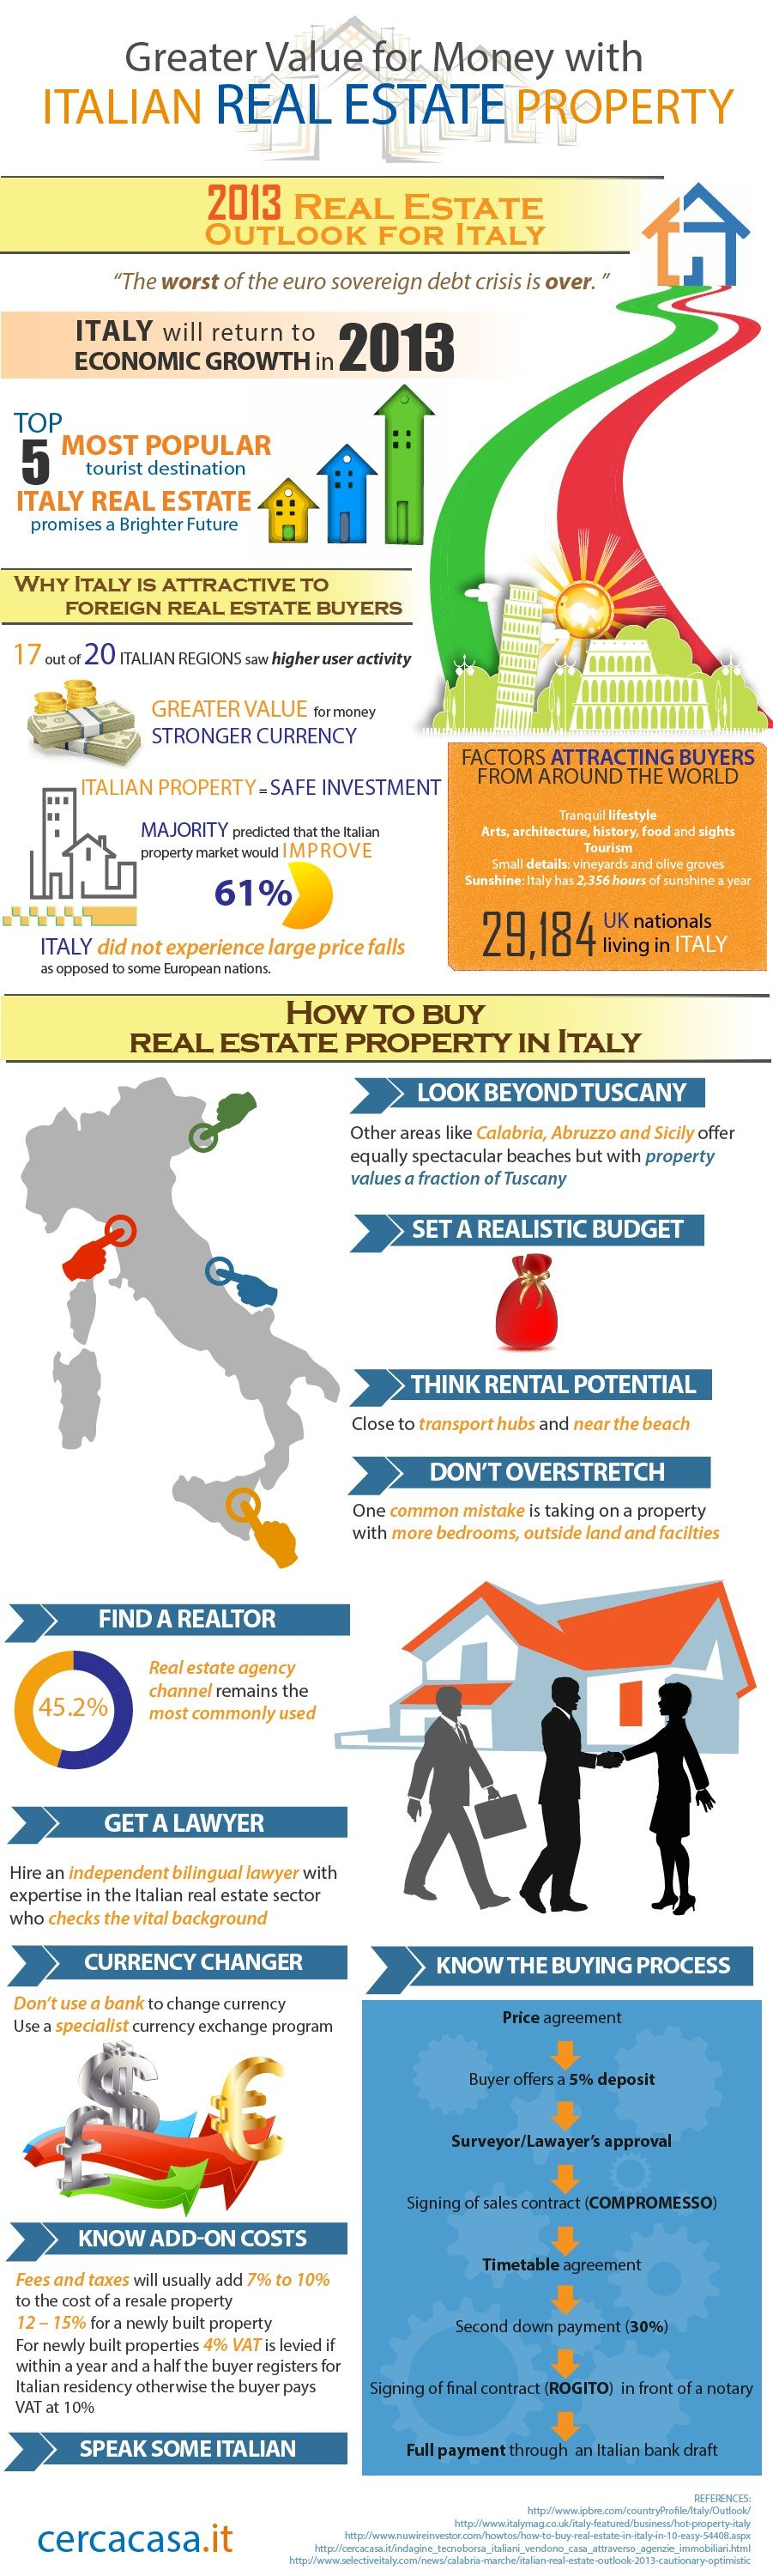 Greater Value for Money with Italian Real Estate Property